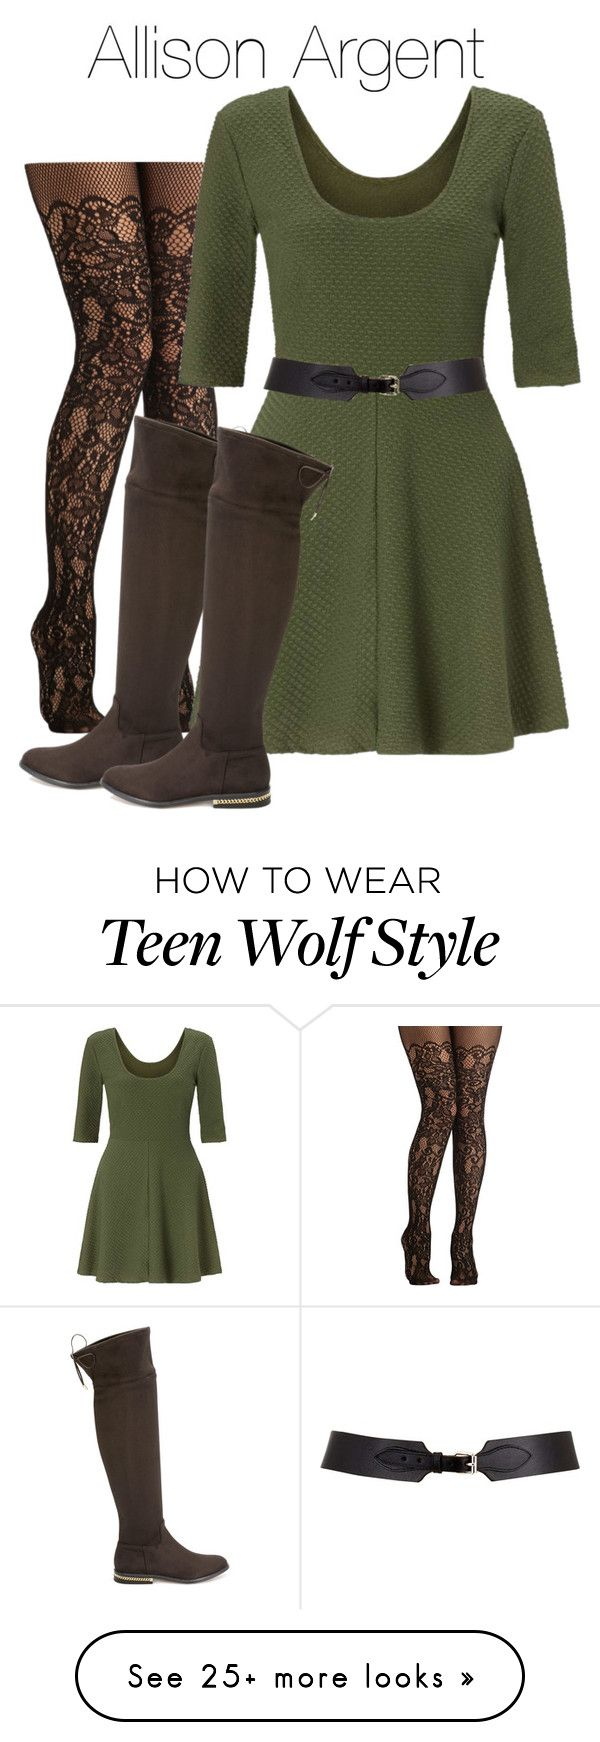 """Allison Argent - tw / teen wolf"" by shadyannon on Polyvore featuring Miss Selfridge, MICHAEL Michael Kors and Maison Boinet"